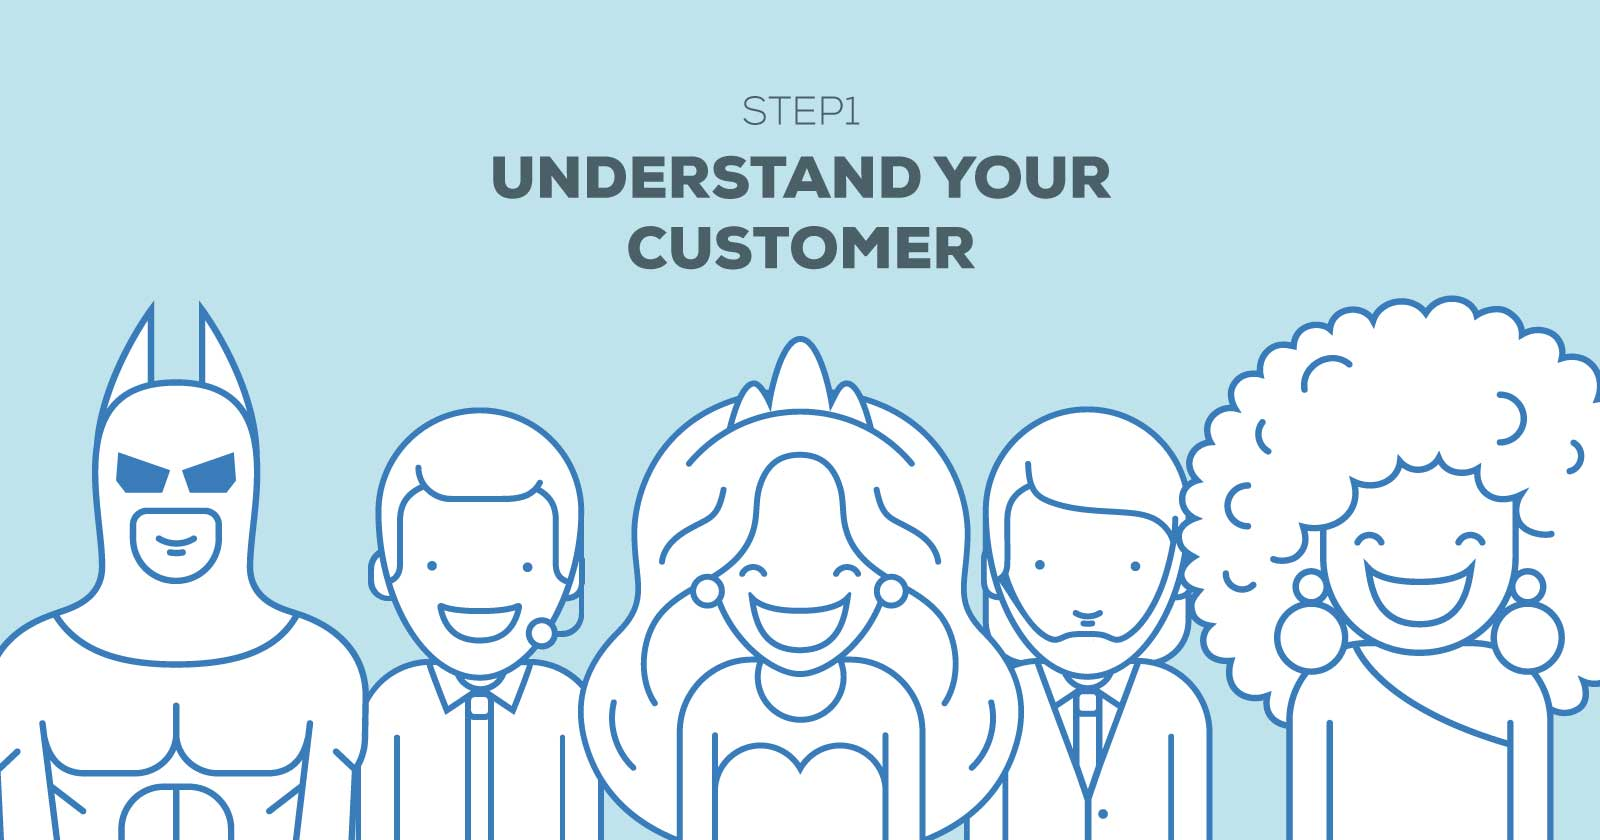 Step 1 Understand Your Customer